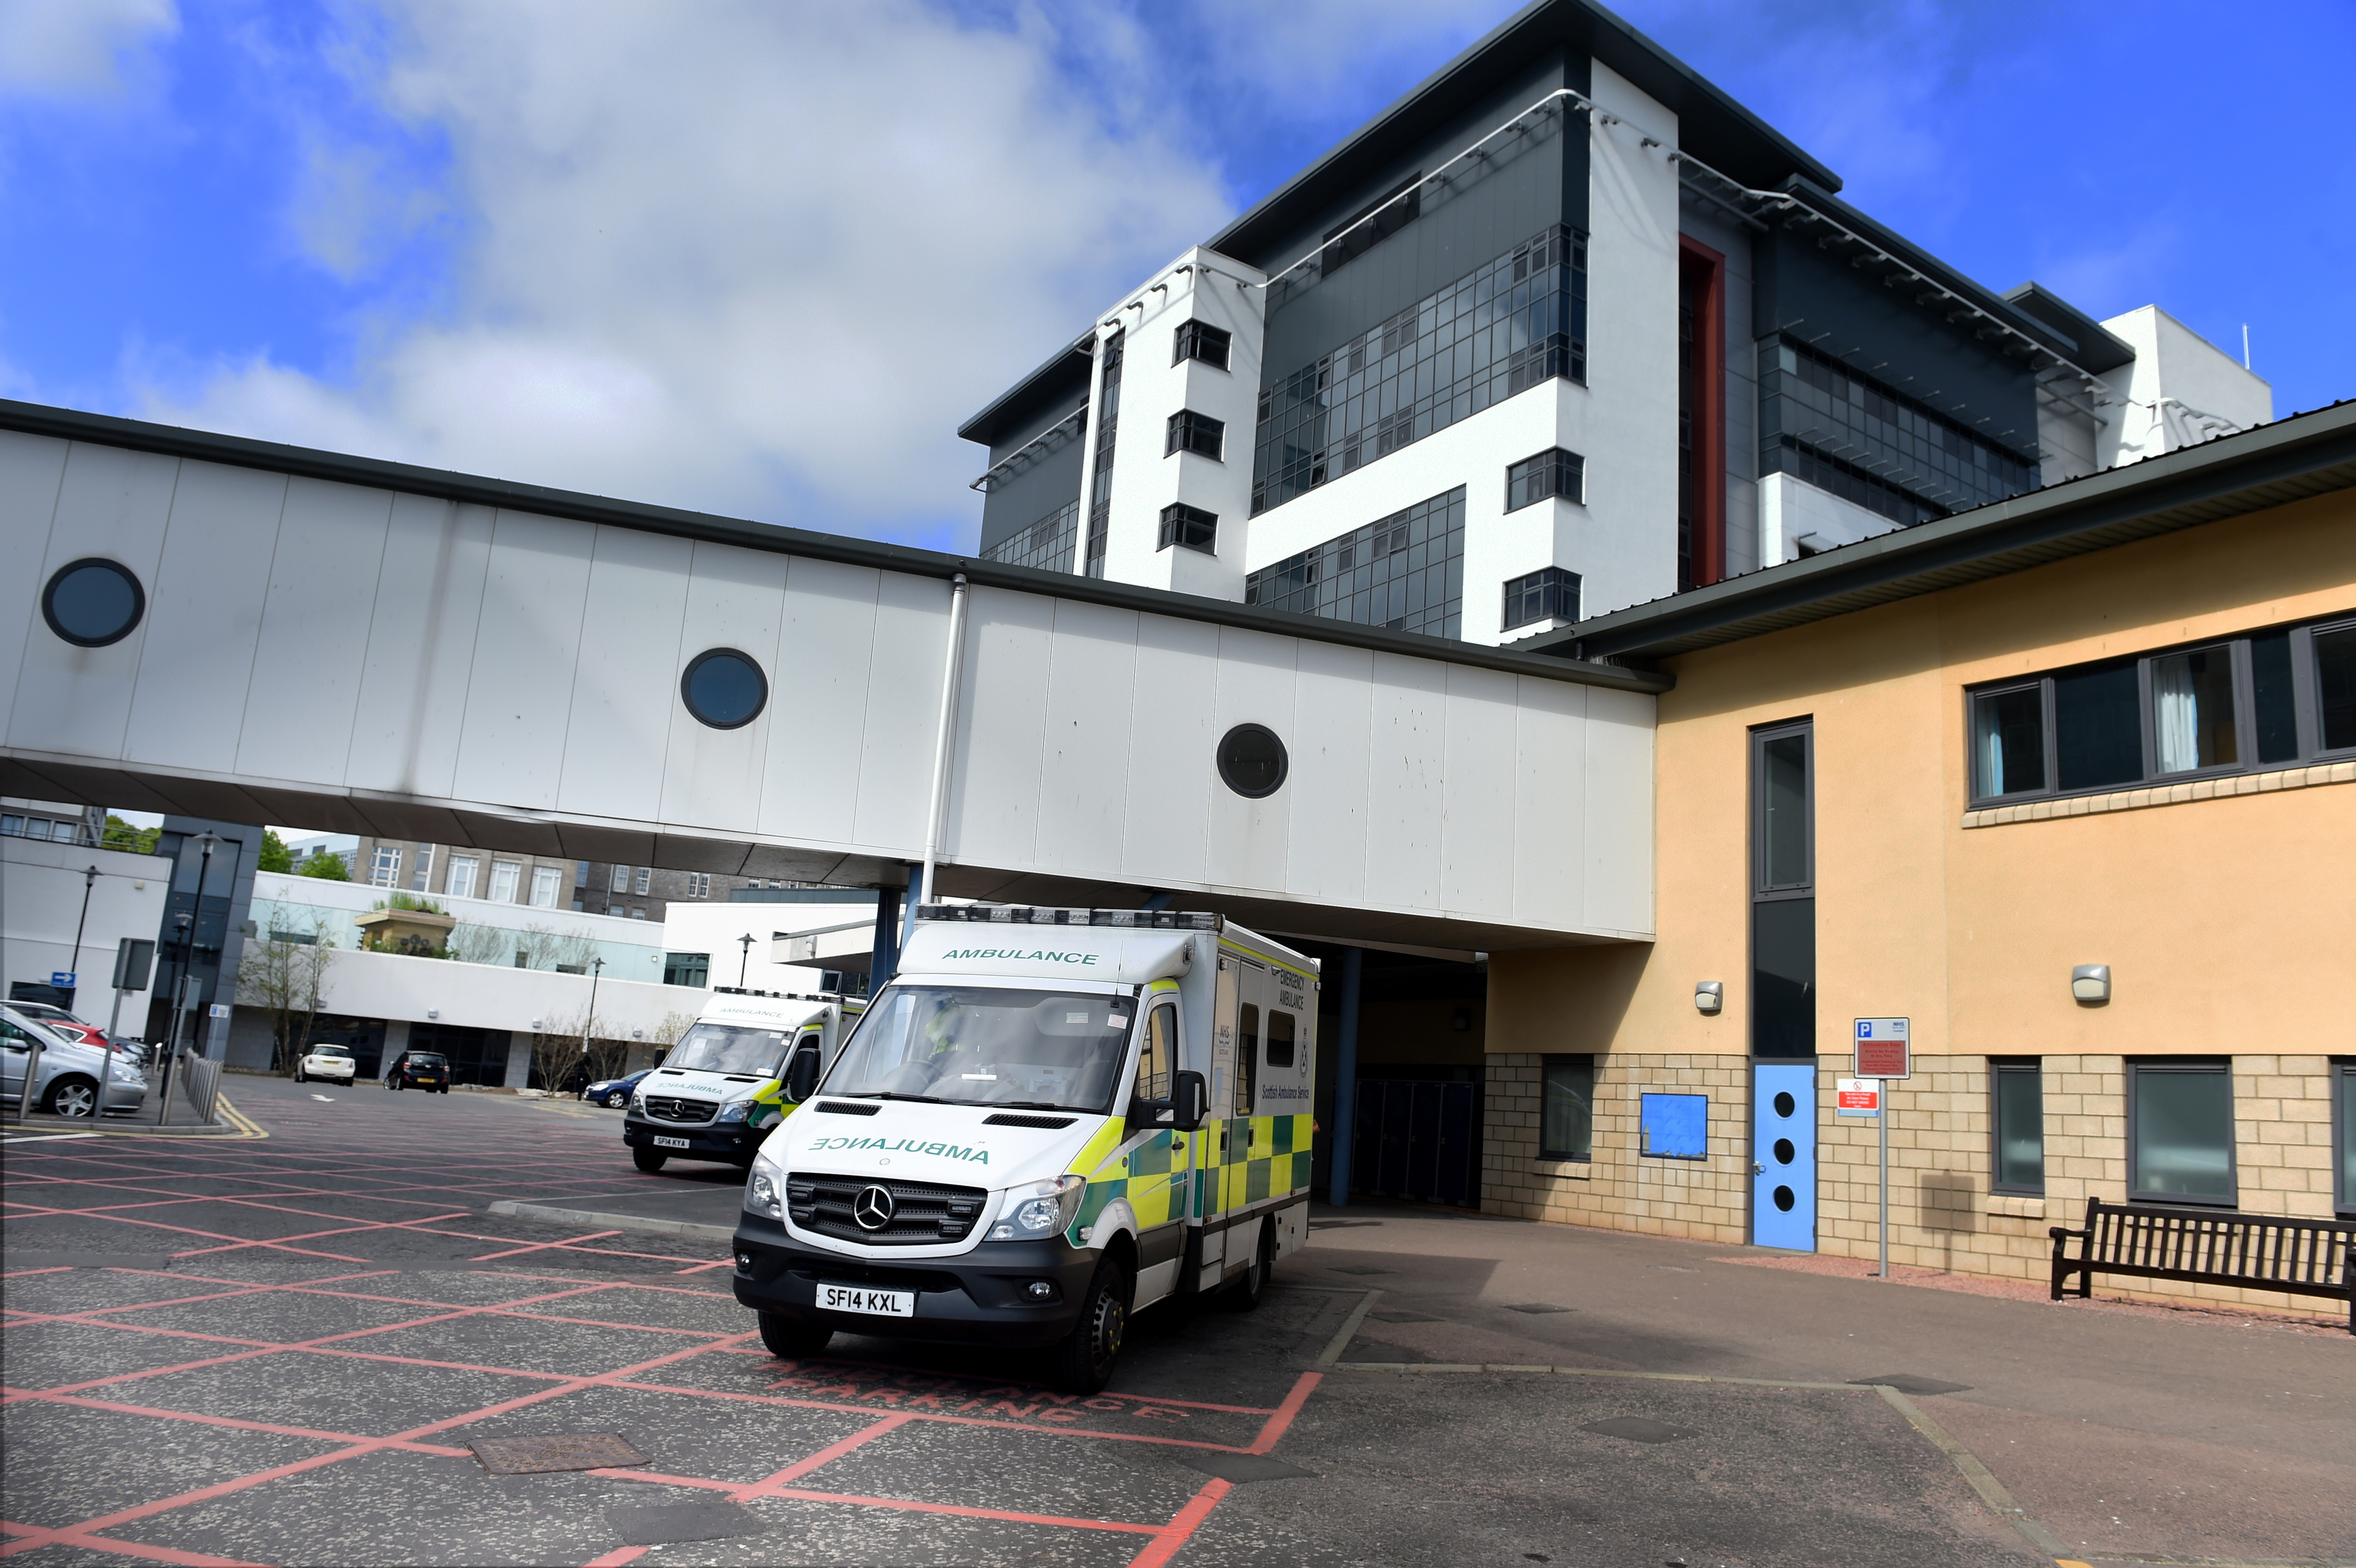 Aberdeen Royal Infirmary is expected to see rising patient numbers.